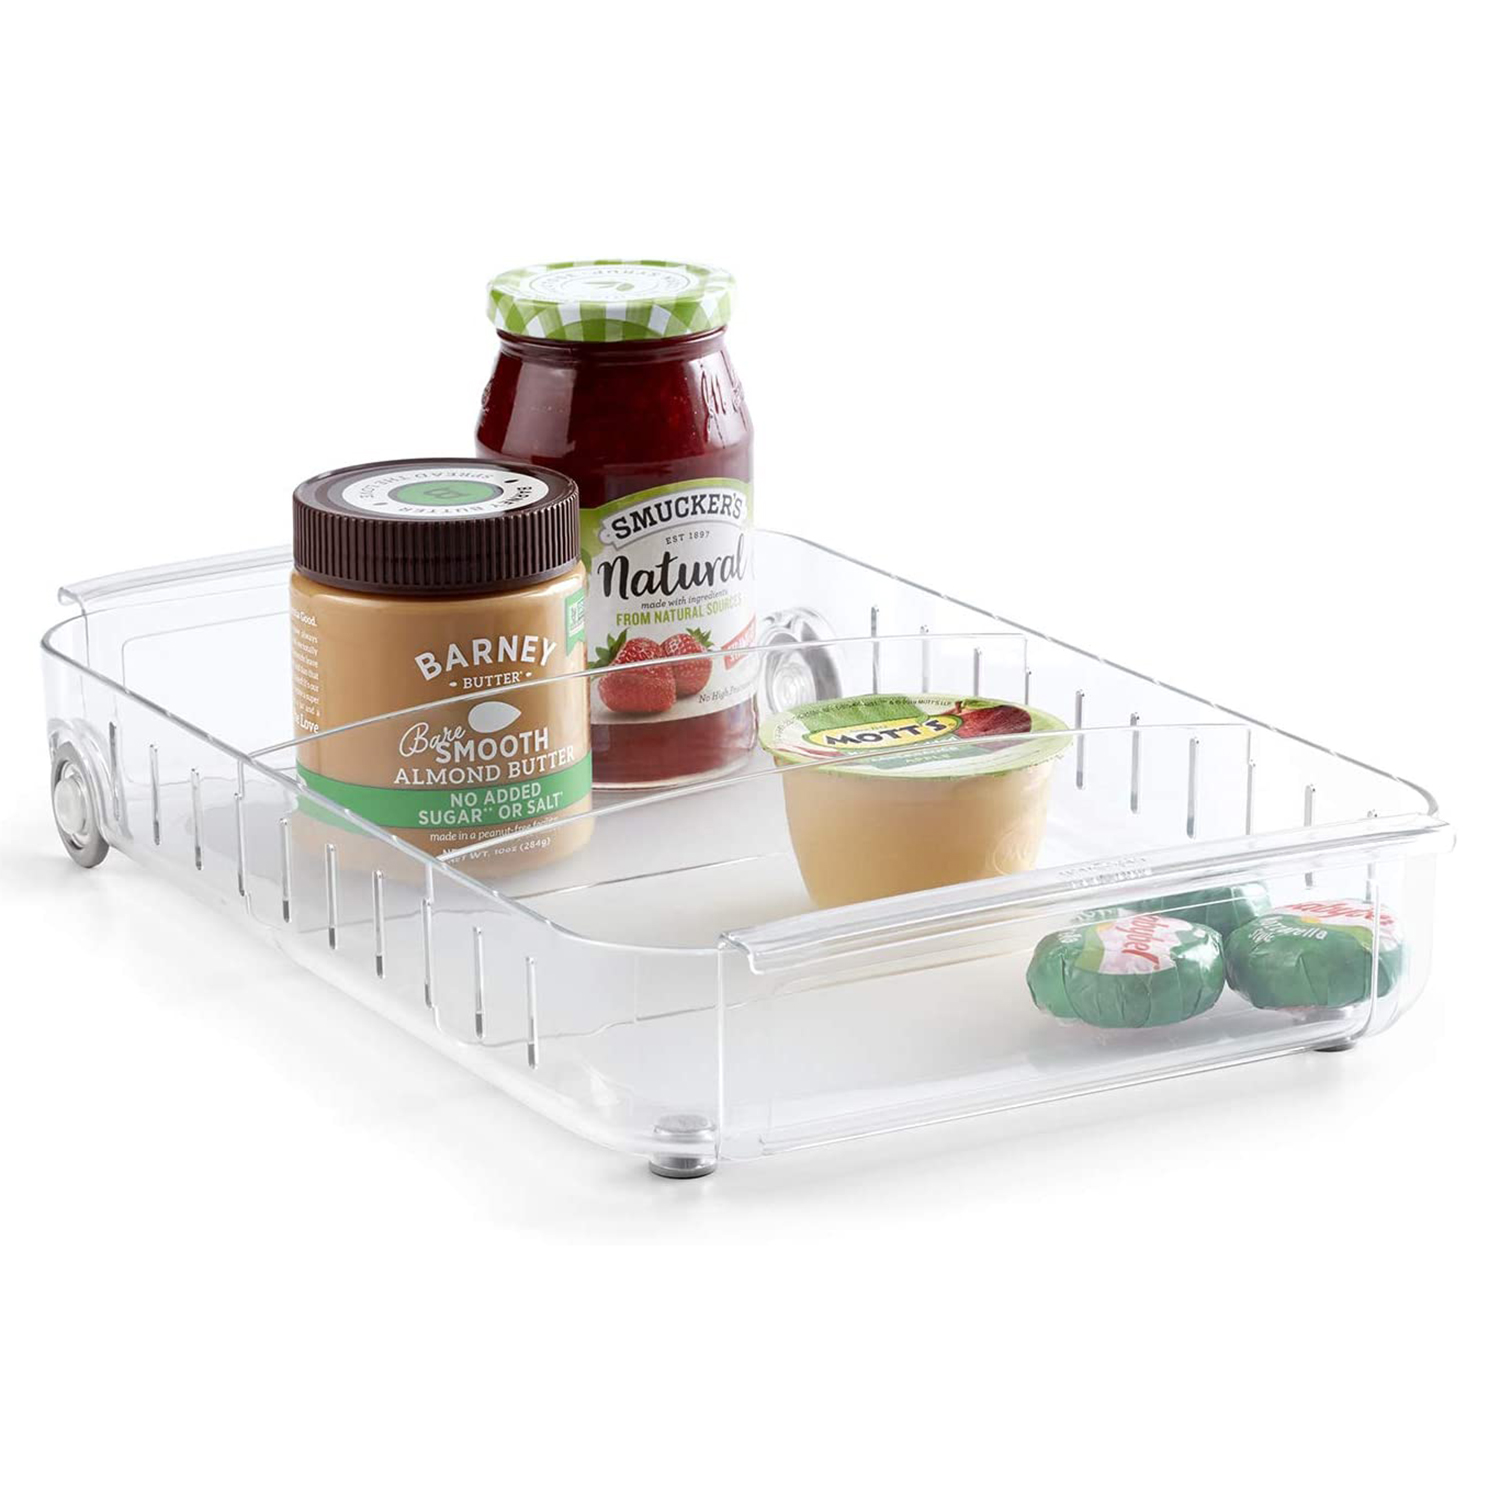 YouCopia RollOut Fridge Caddy